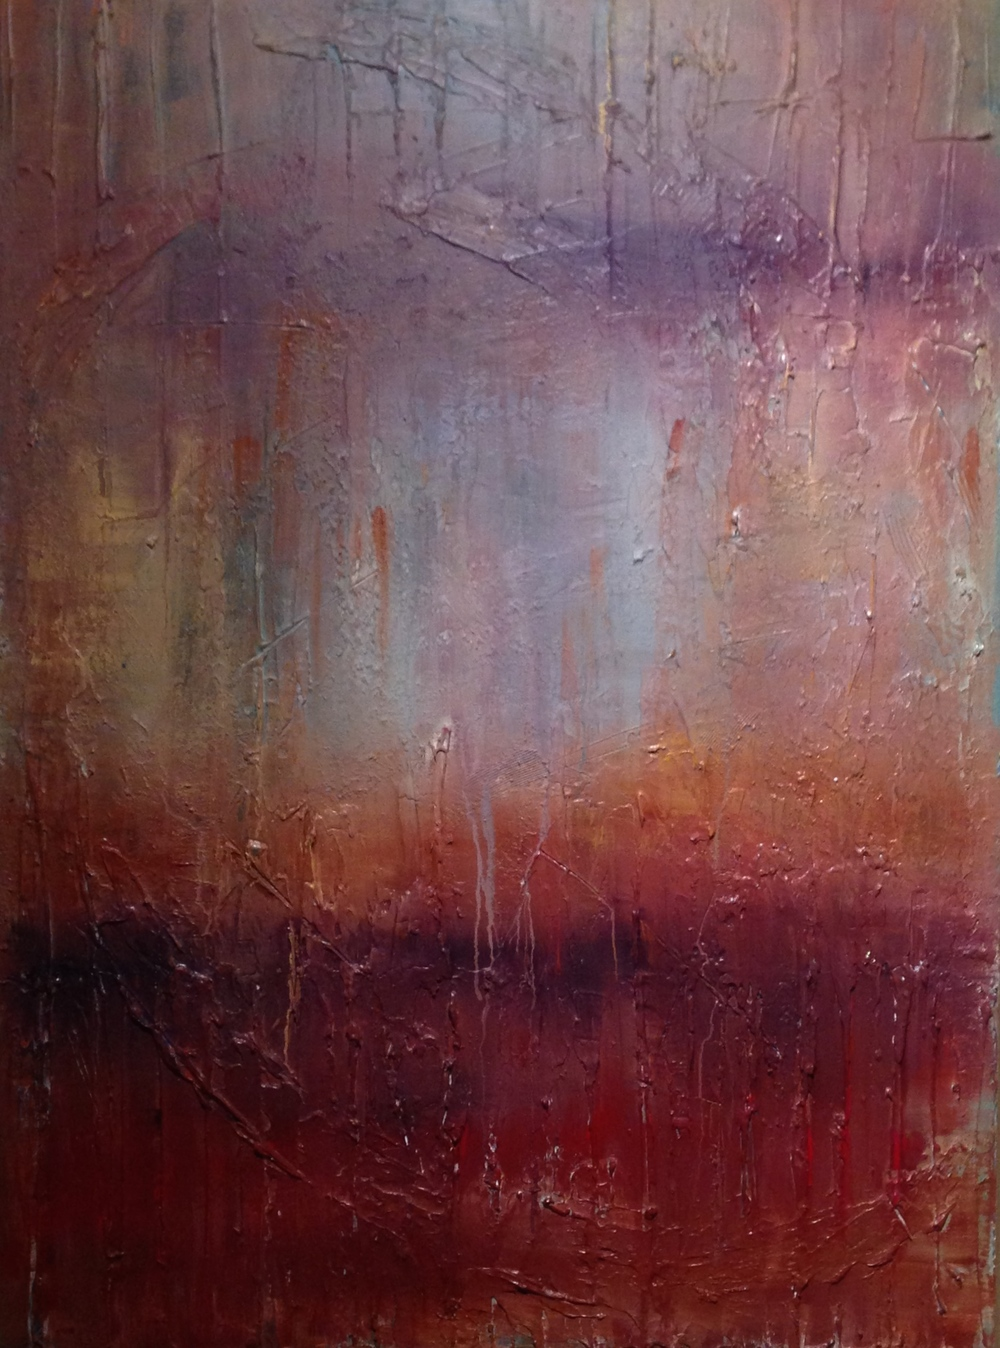 mystique  40 x 30 x 1.5 inches  mixed media on canvas  $2,700